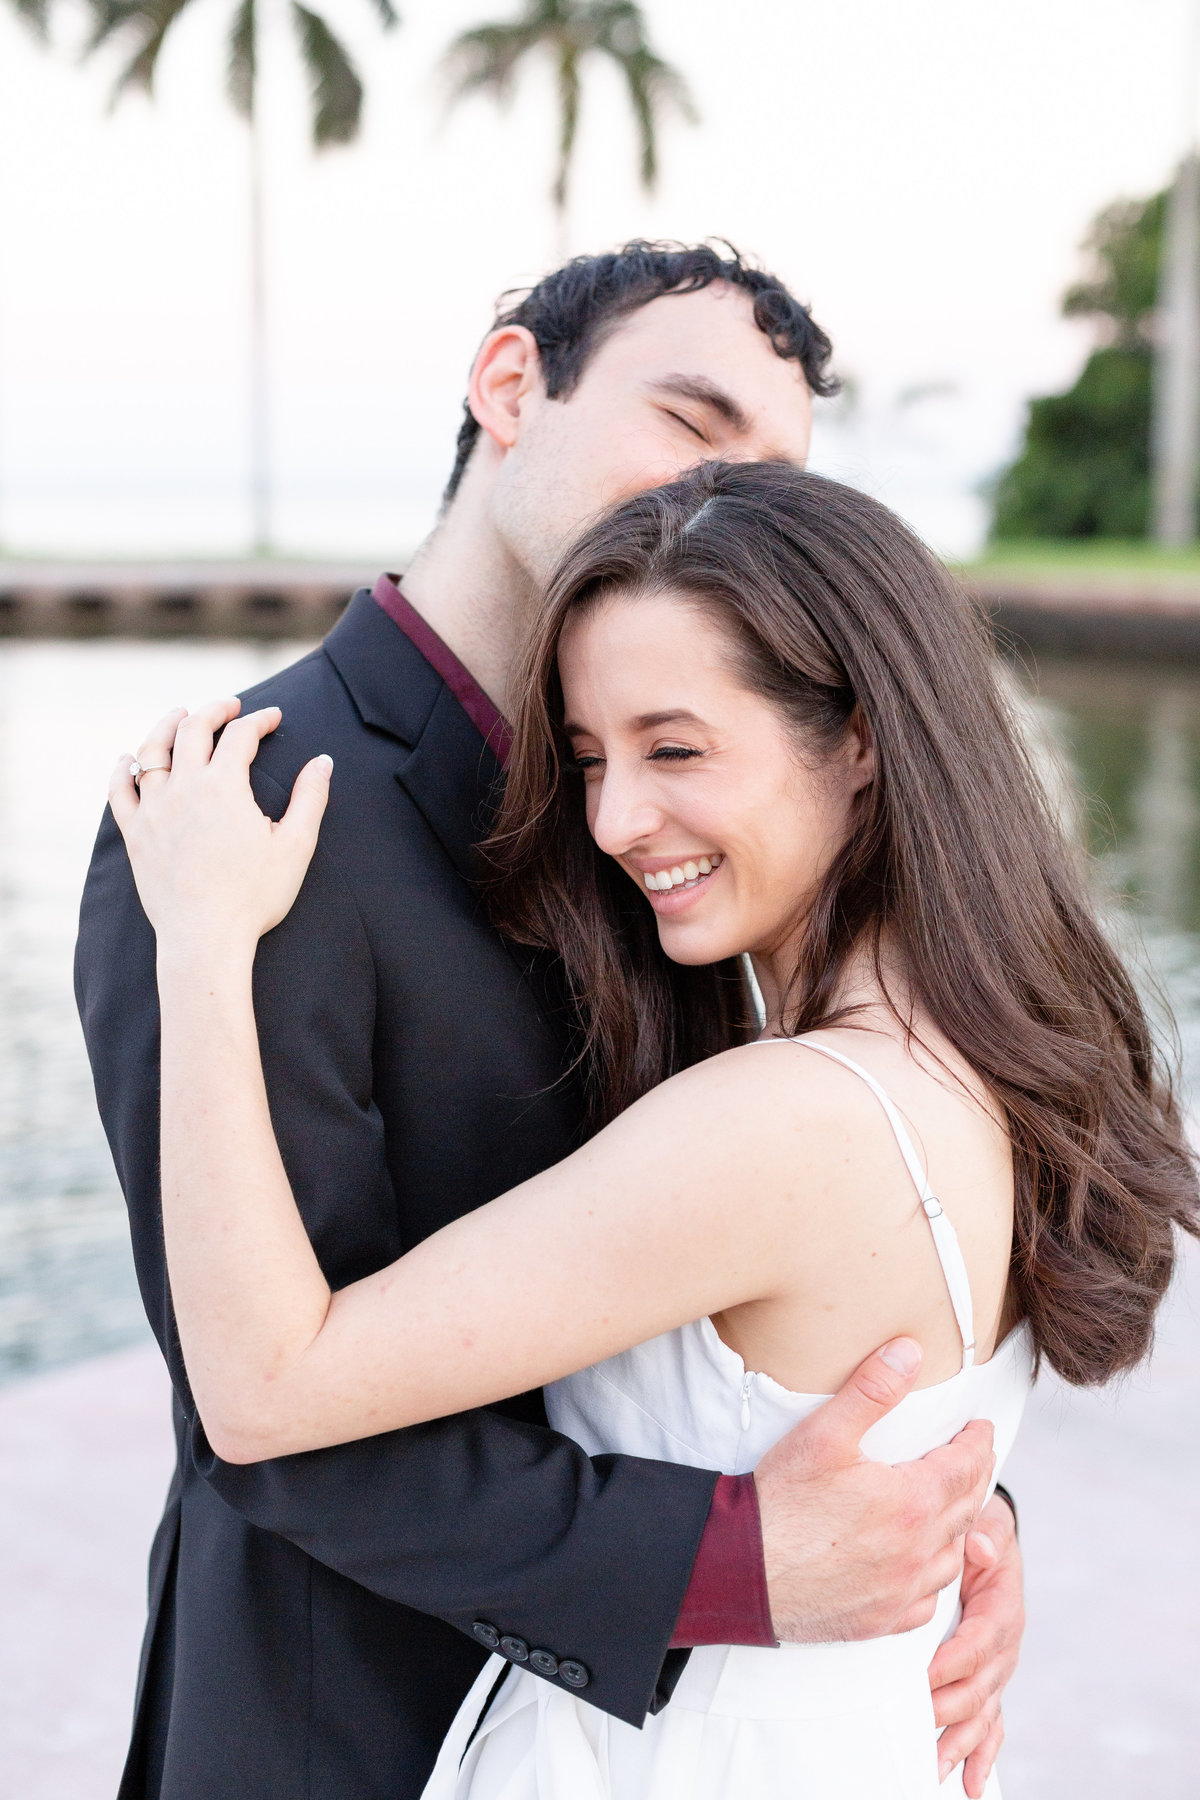 Chris-and-micaela-photography-wedding-deering-estate-engagement-session11